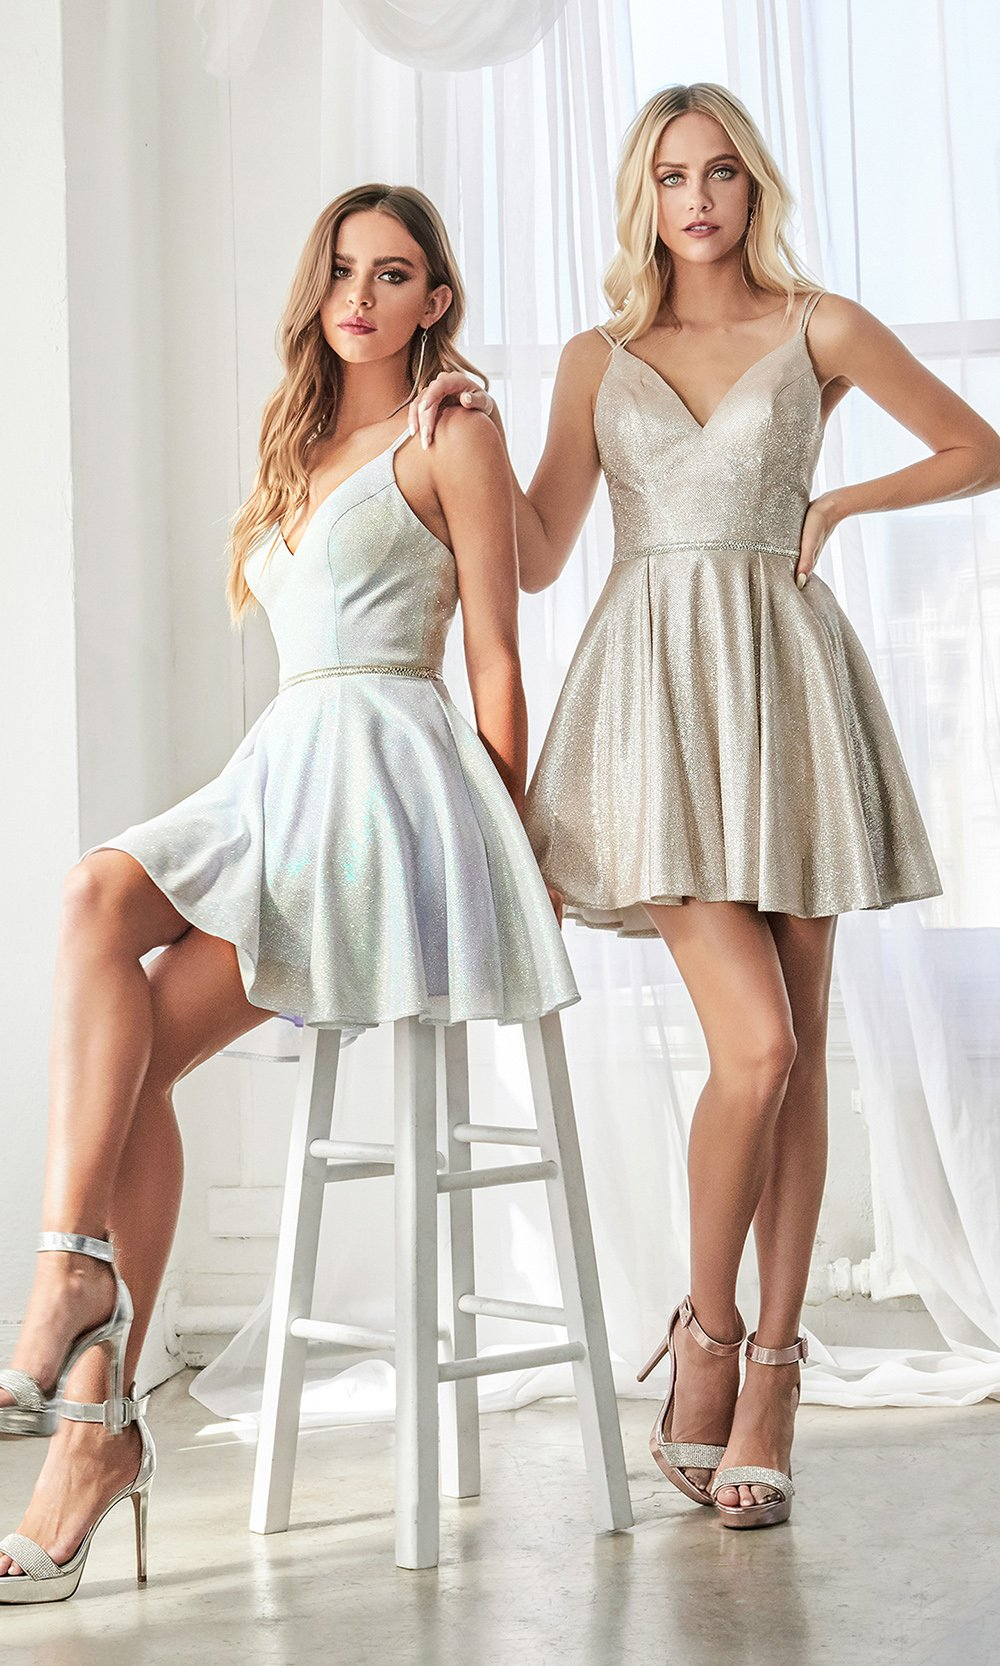 Cinderella Divine CD201 short champagne flowy simple v neck party dress w/simple skirt & rhinestone belt. Light gold metallic is perfect for prom, graduation, grade 8 grad, confirmation dress, bat mitzvah dress, quinceanera damas. Plus sizes avail